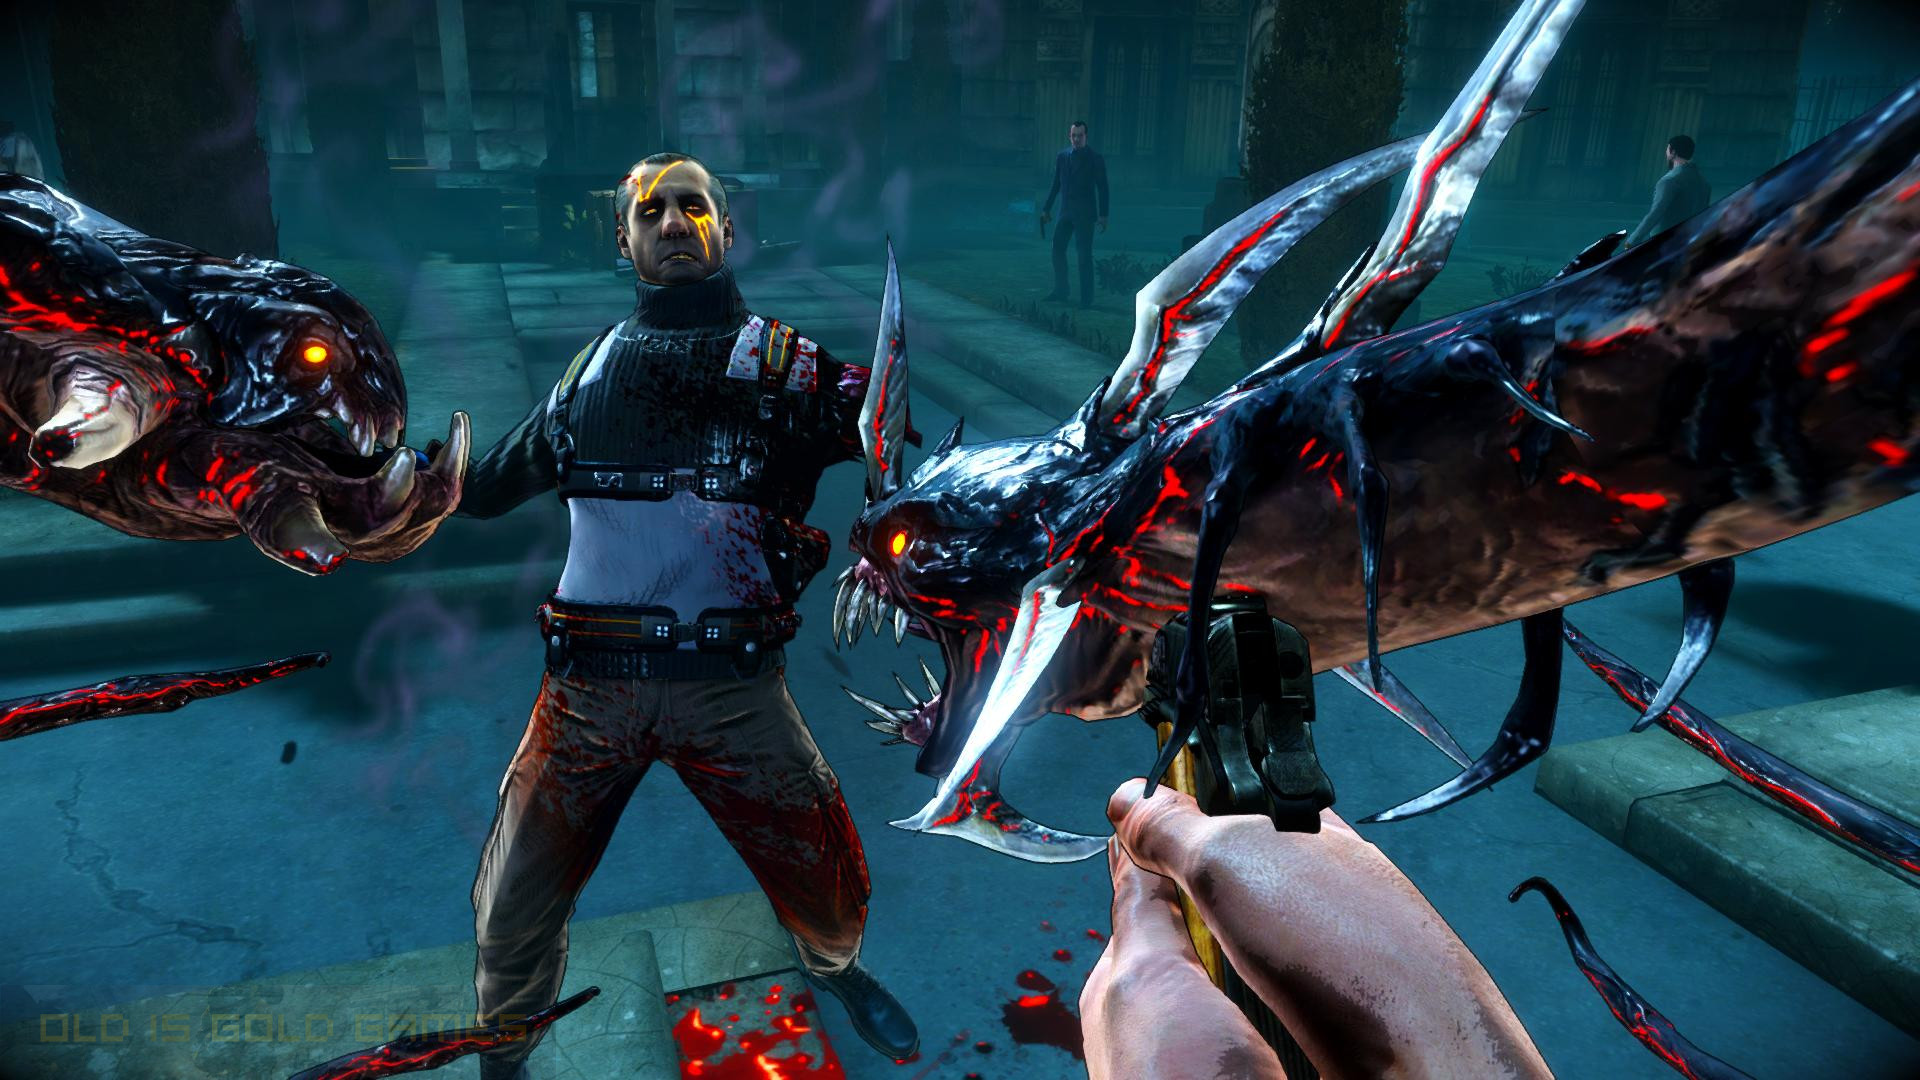 The Darkness 2 Features